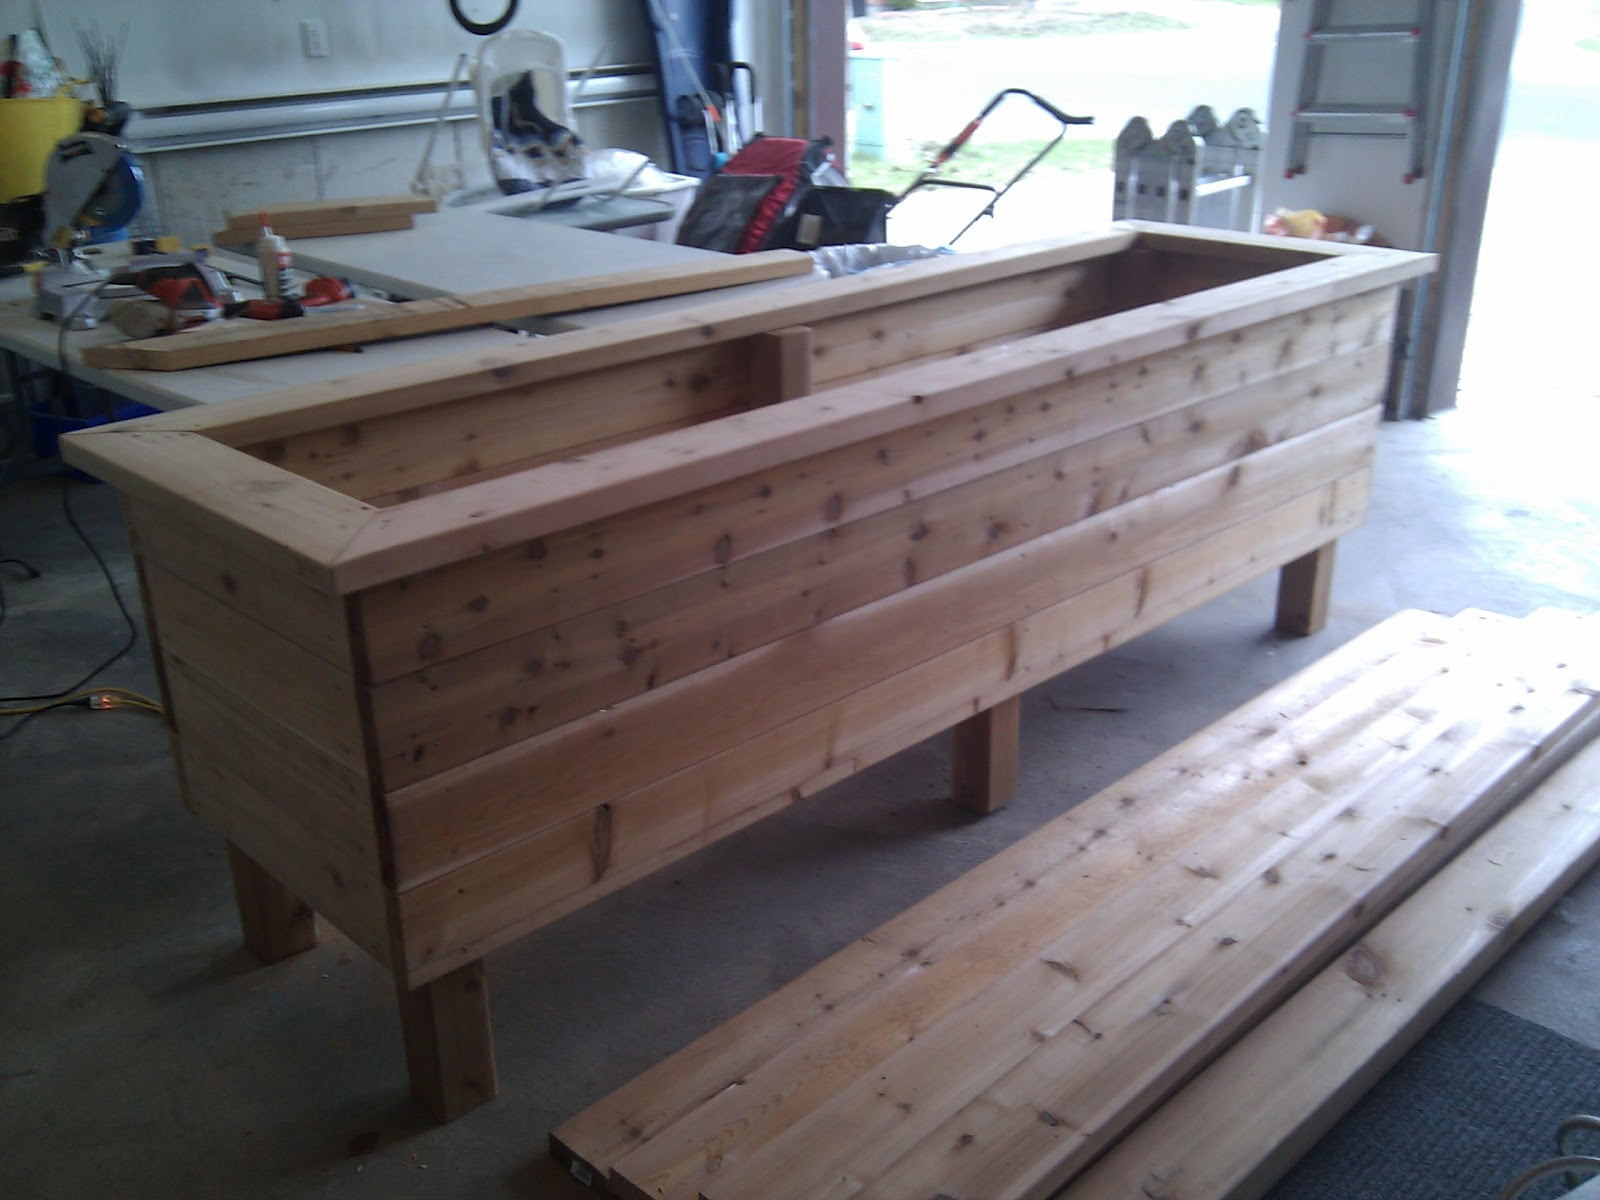 construction de bacs pour potager sur lev s. Black Bedroom Furniture Sets. Home Design Ideas